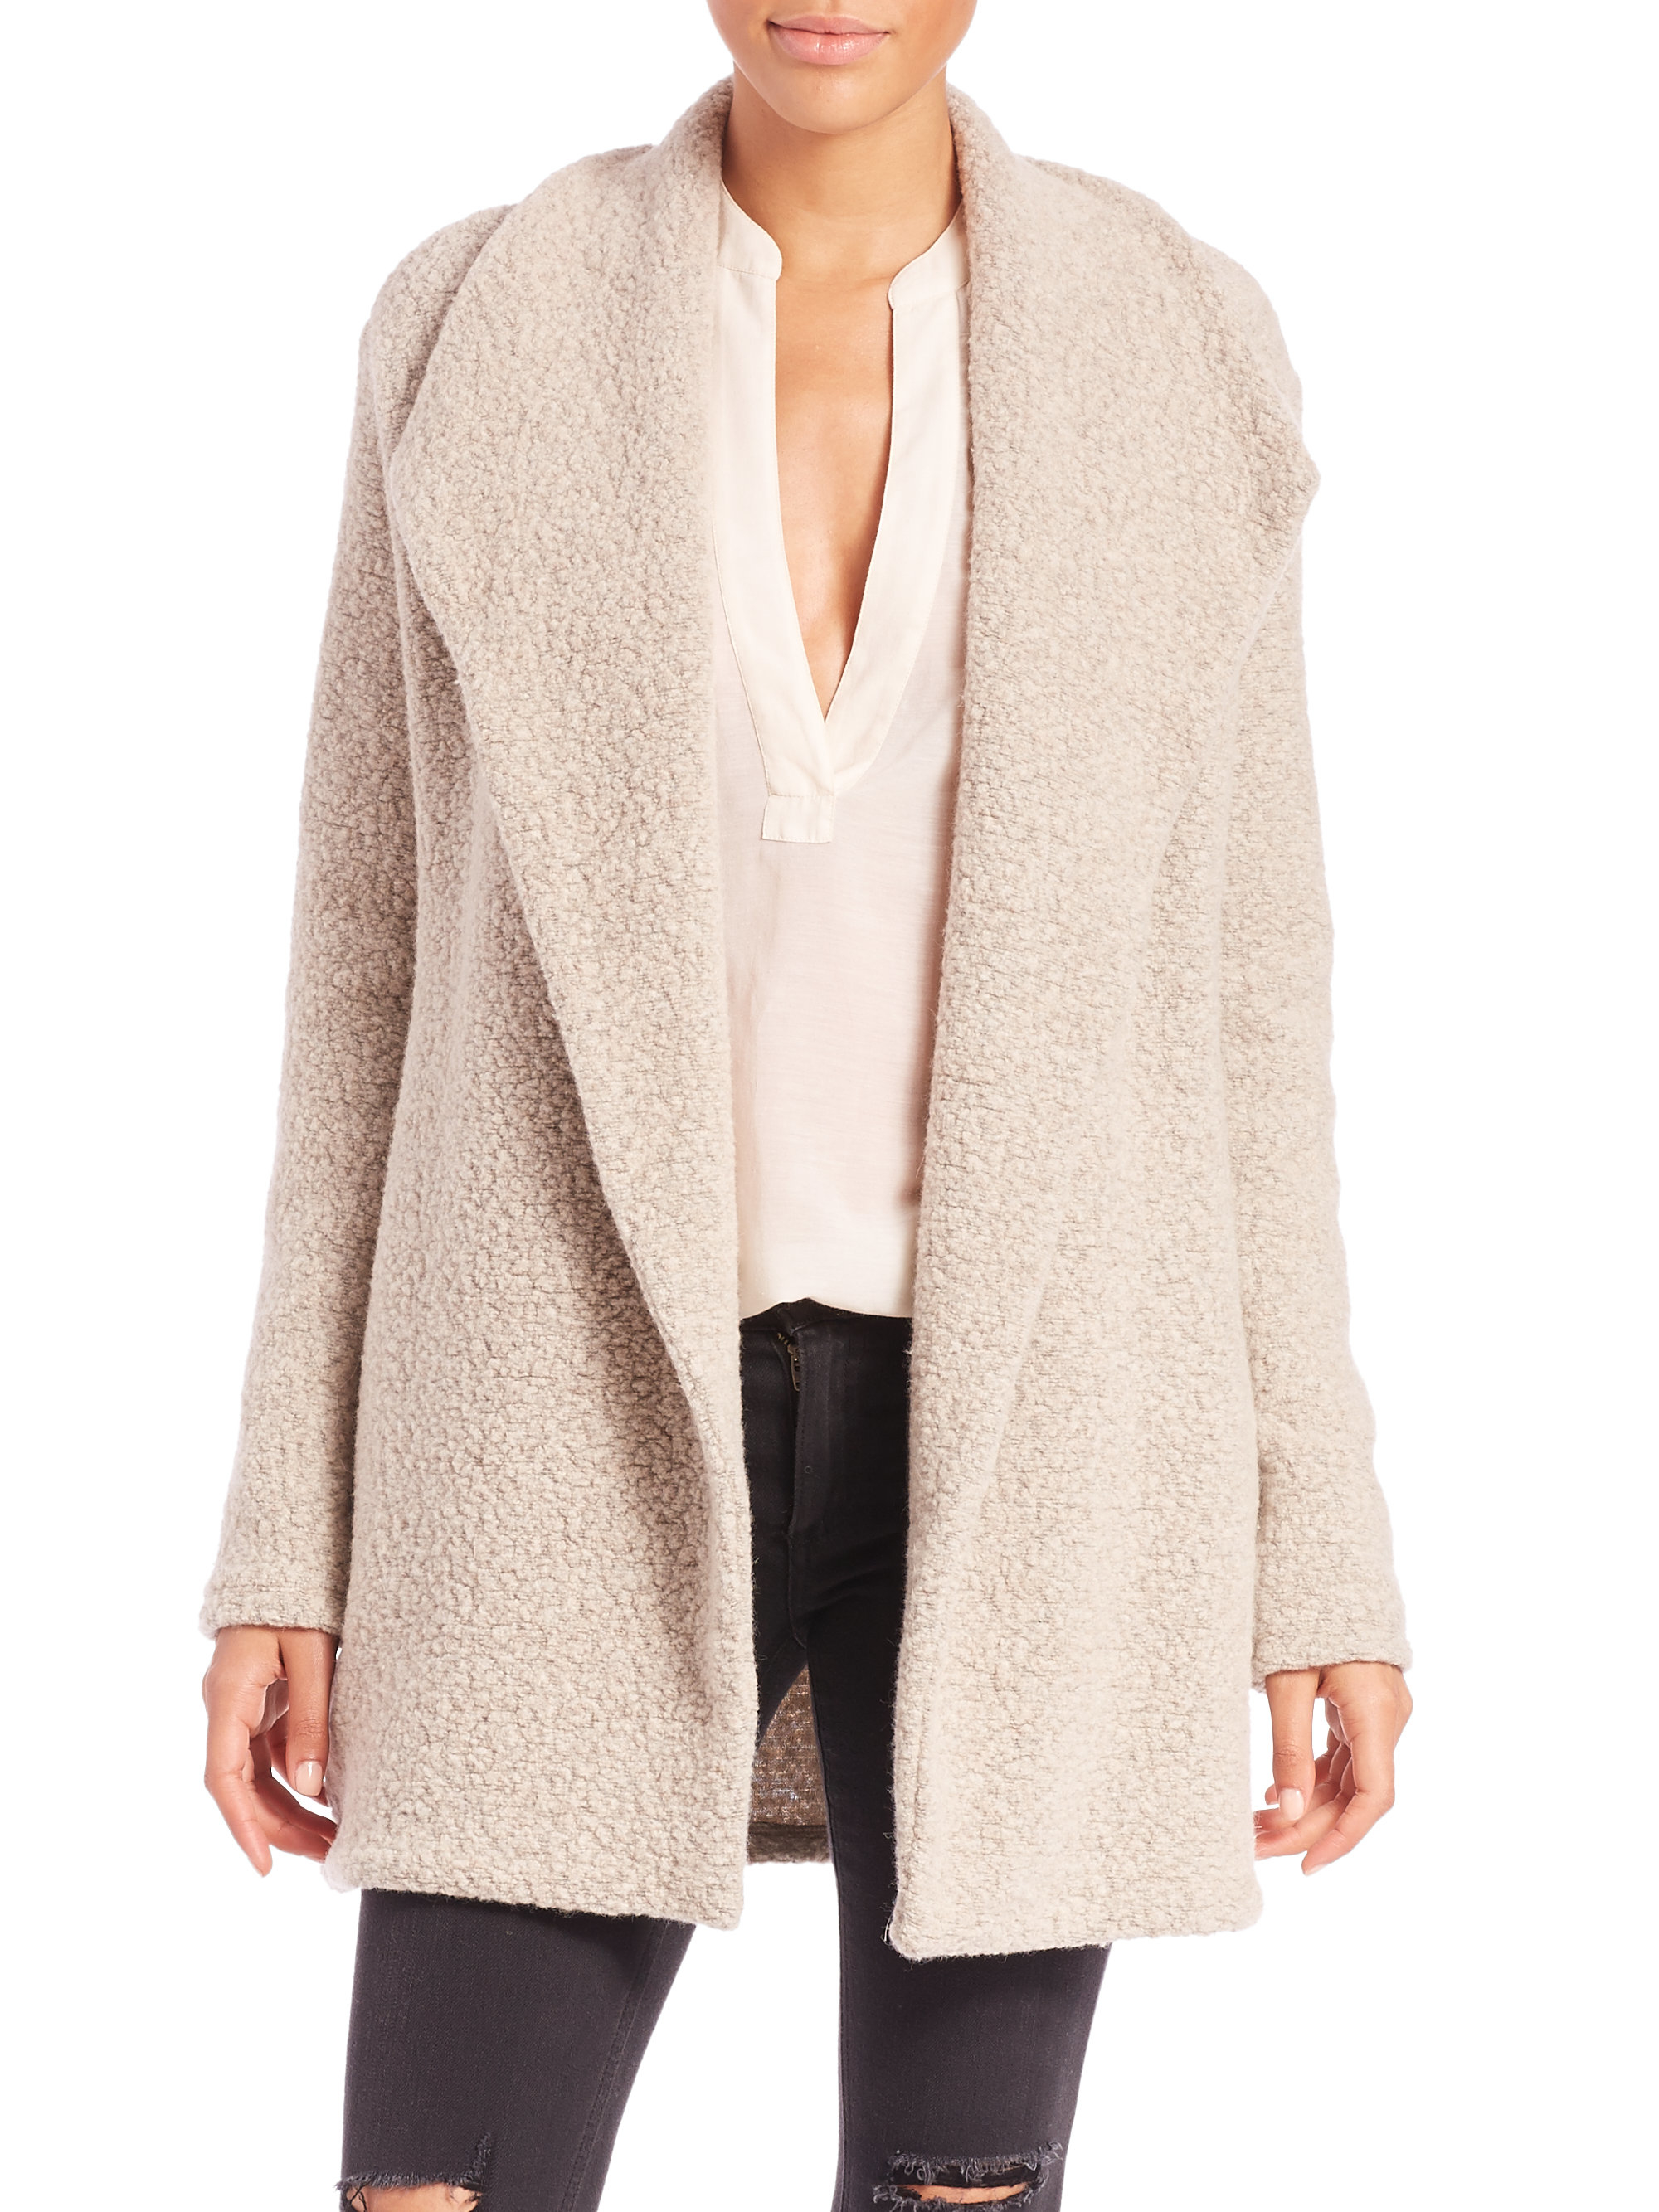 James perse Fleece Draped Open-front Cardigan in Natural | Lyst